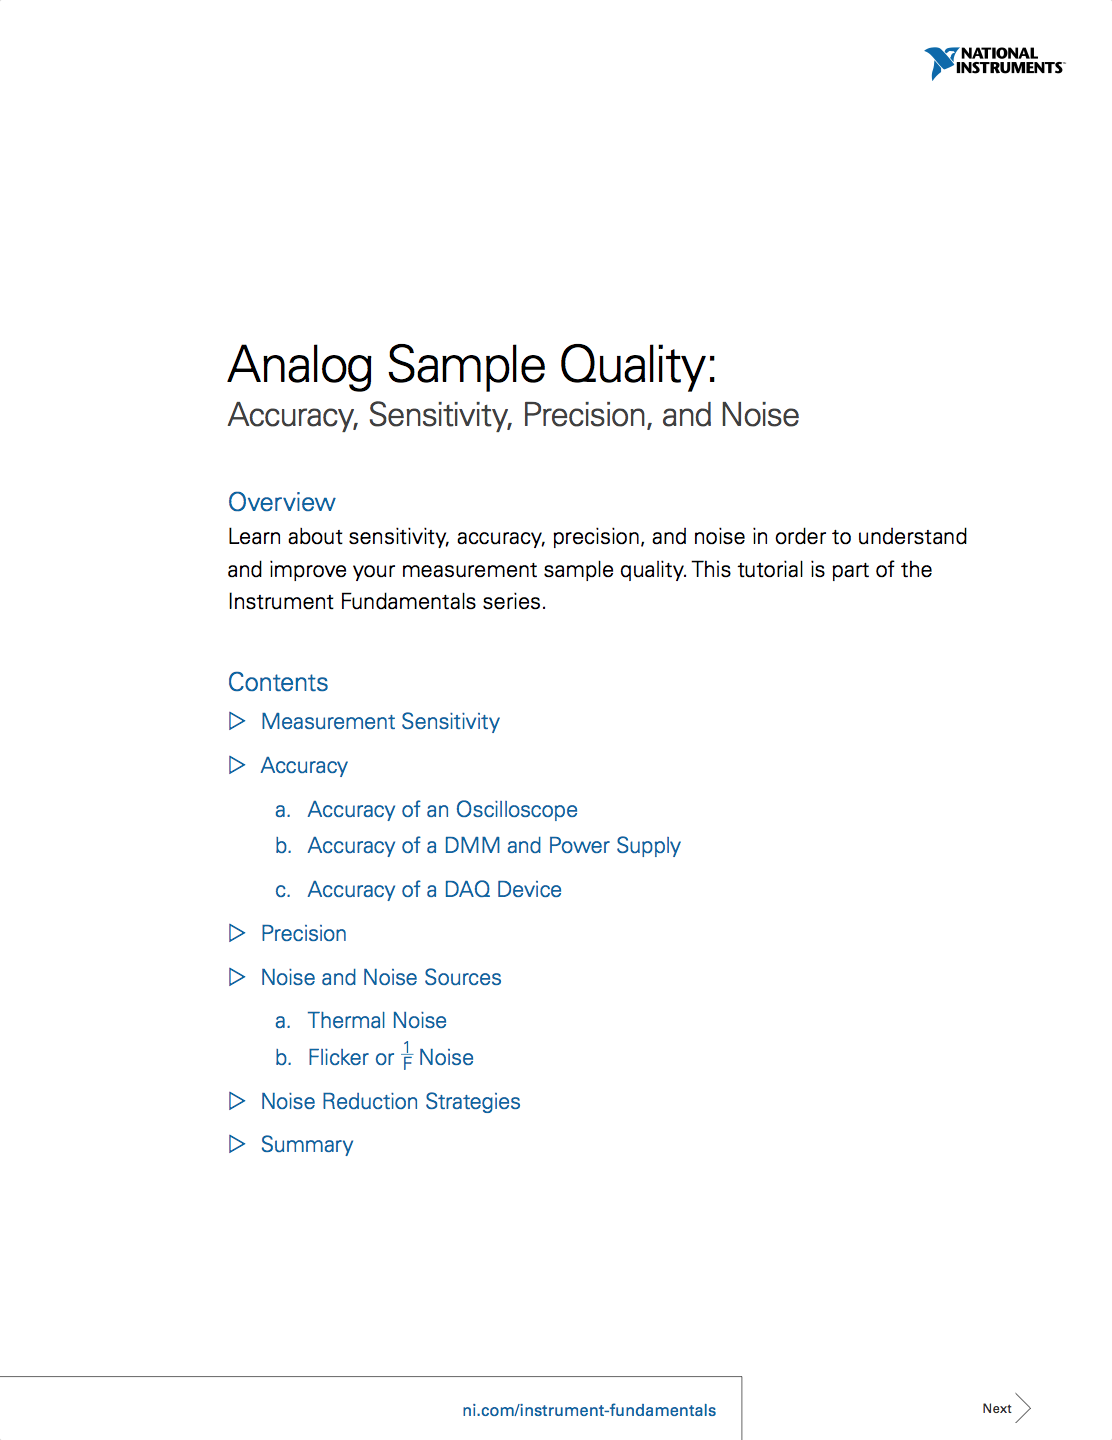 Analog Sample Quality Accuracy Sensitivity Precision And Noise